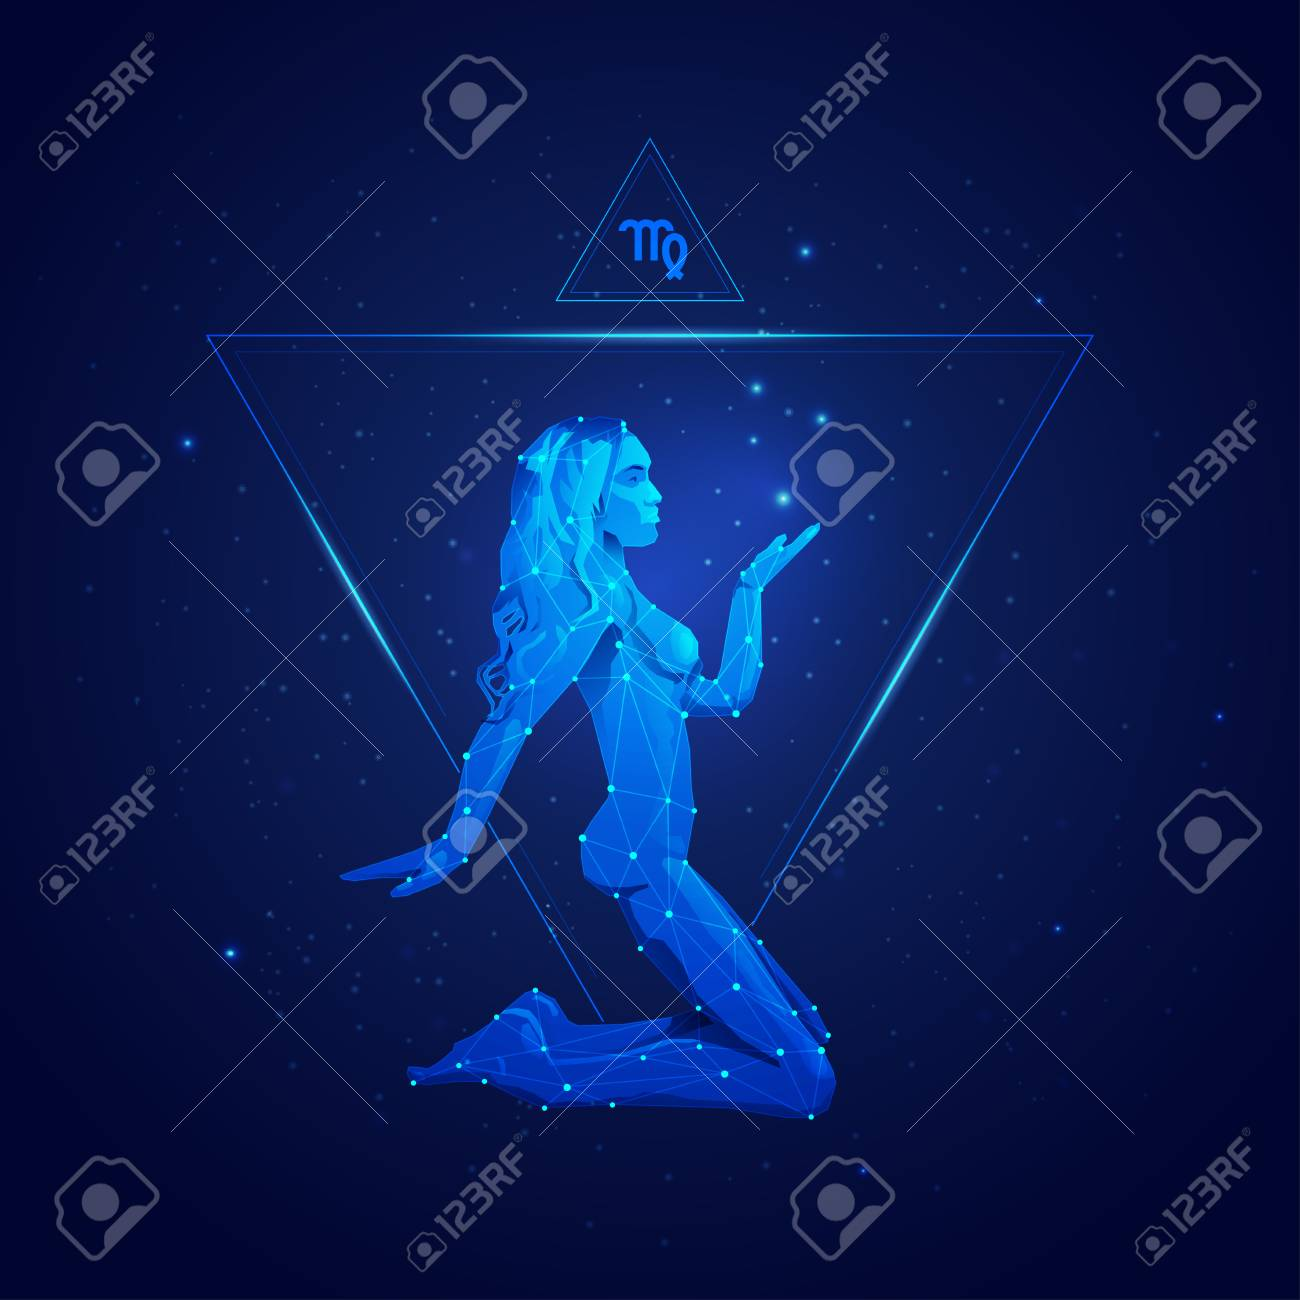 virgo horoscope sign in twelve zodiac with galaxy stars background, graphic of wireframe girl - 104610338